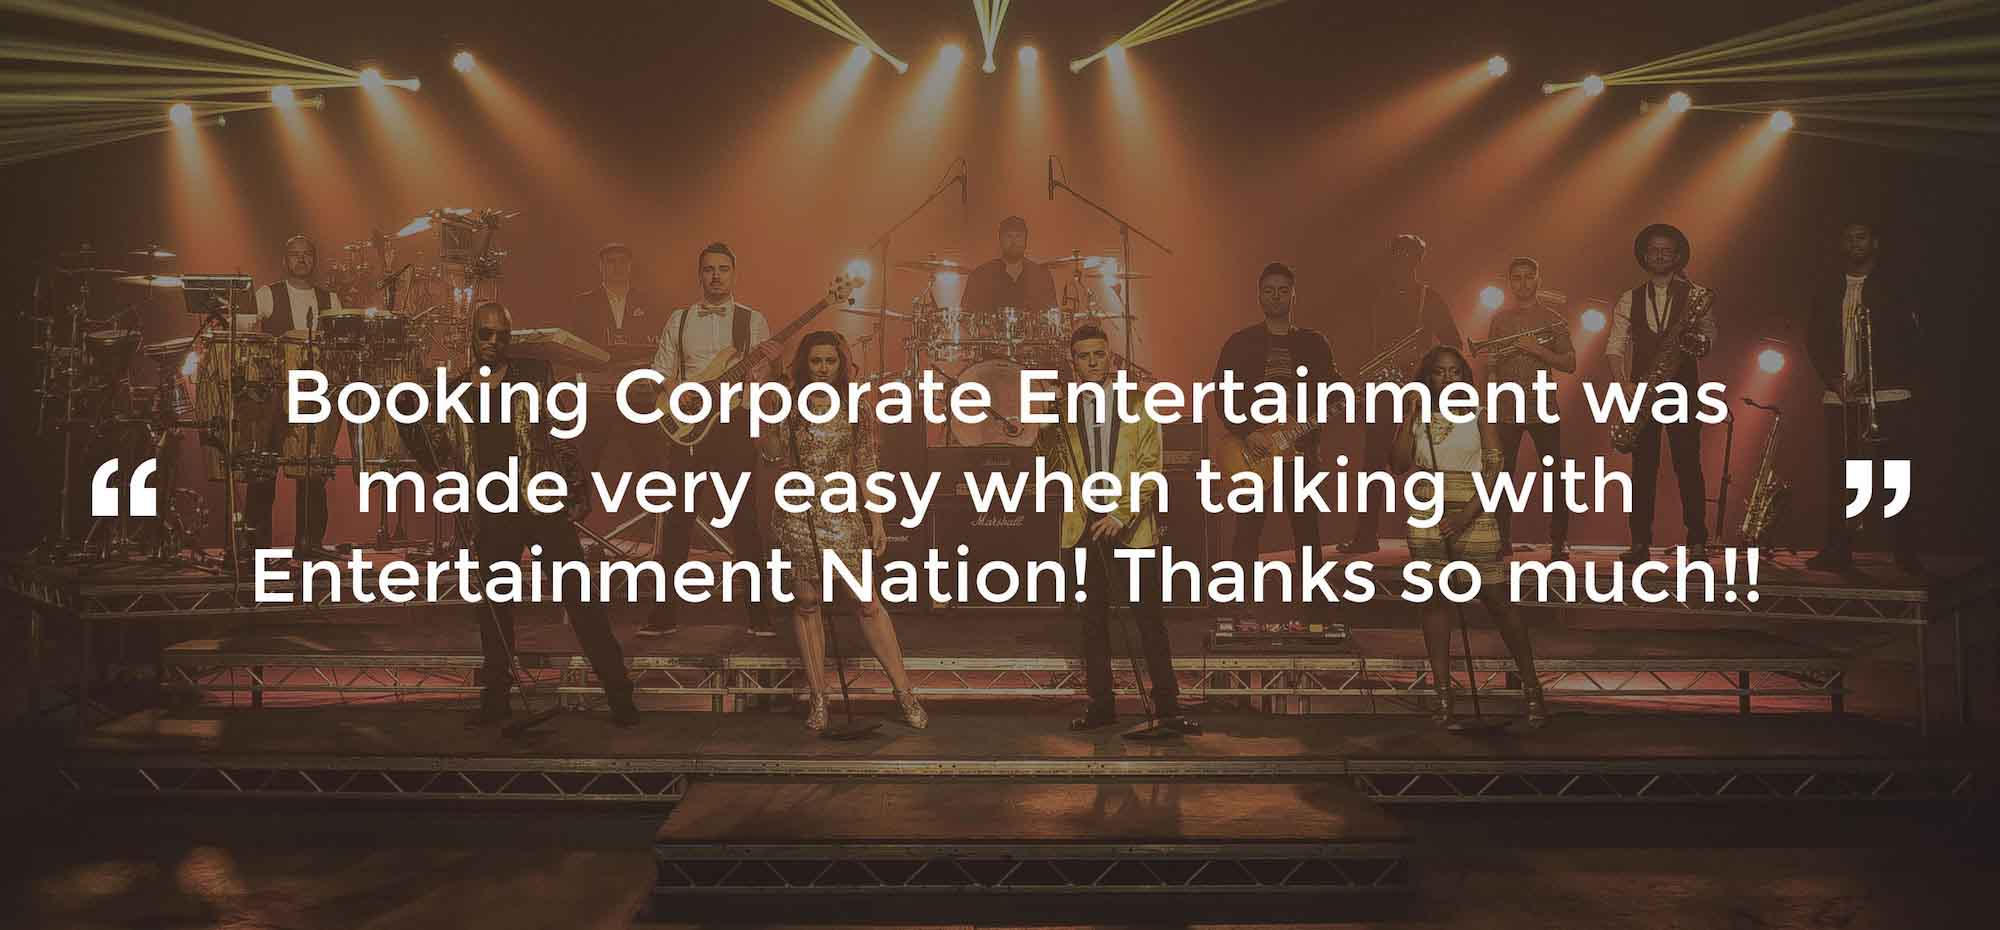 Client Review of Corporate Entertainment Buckinghamshire